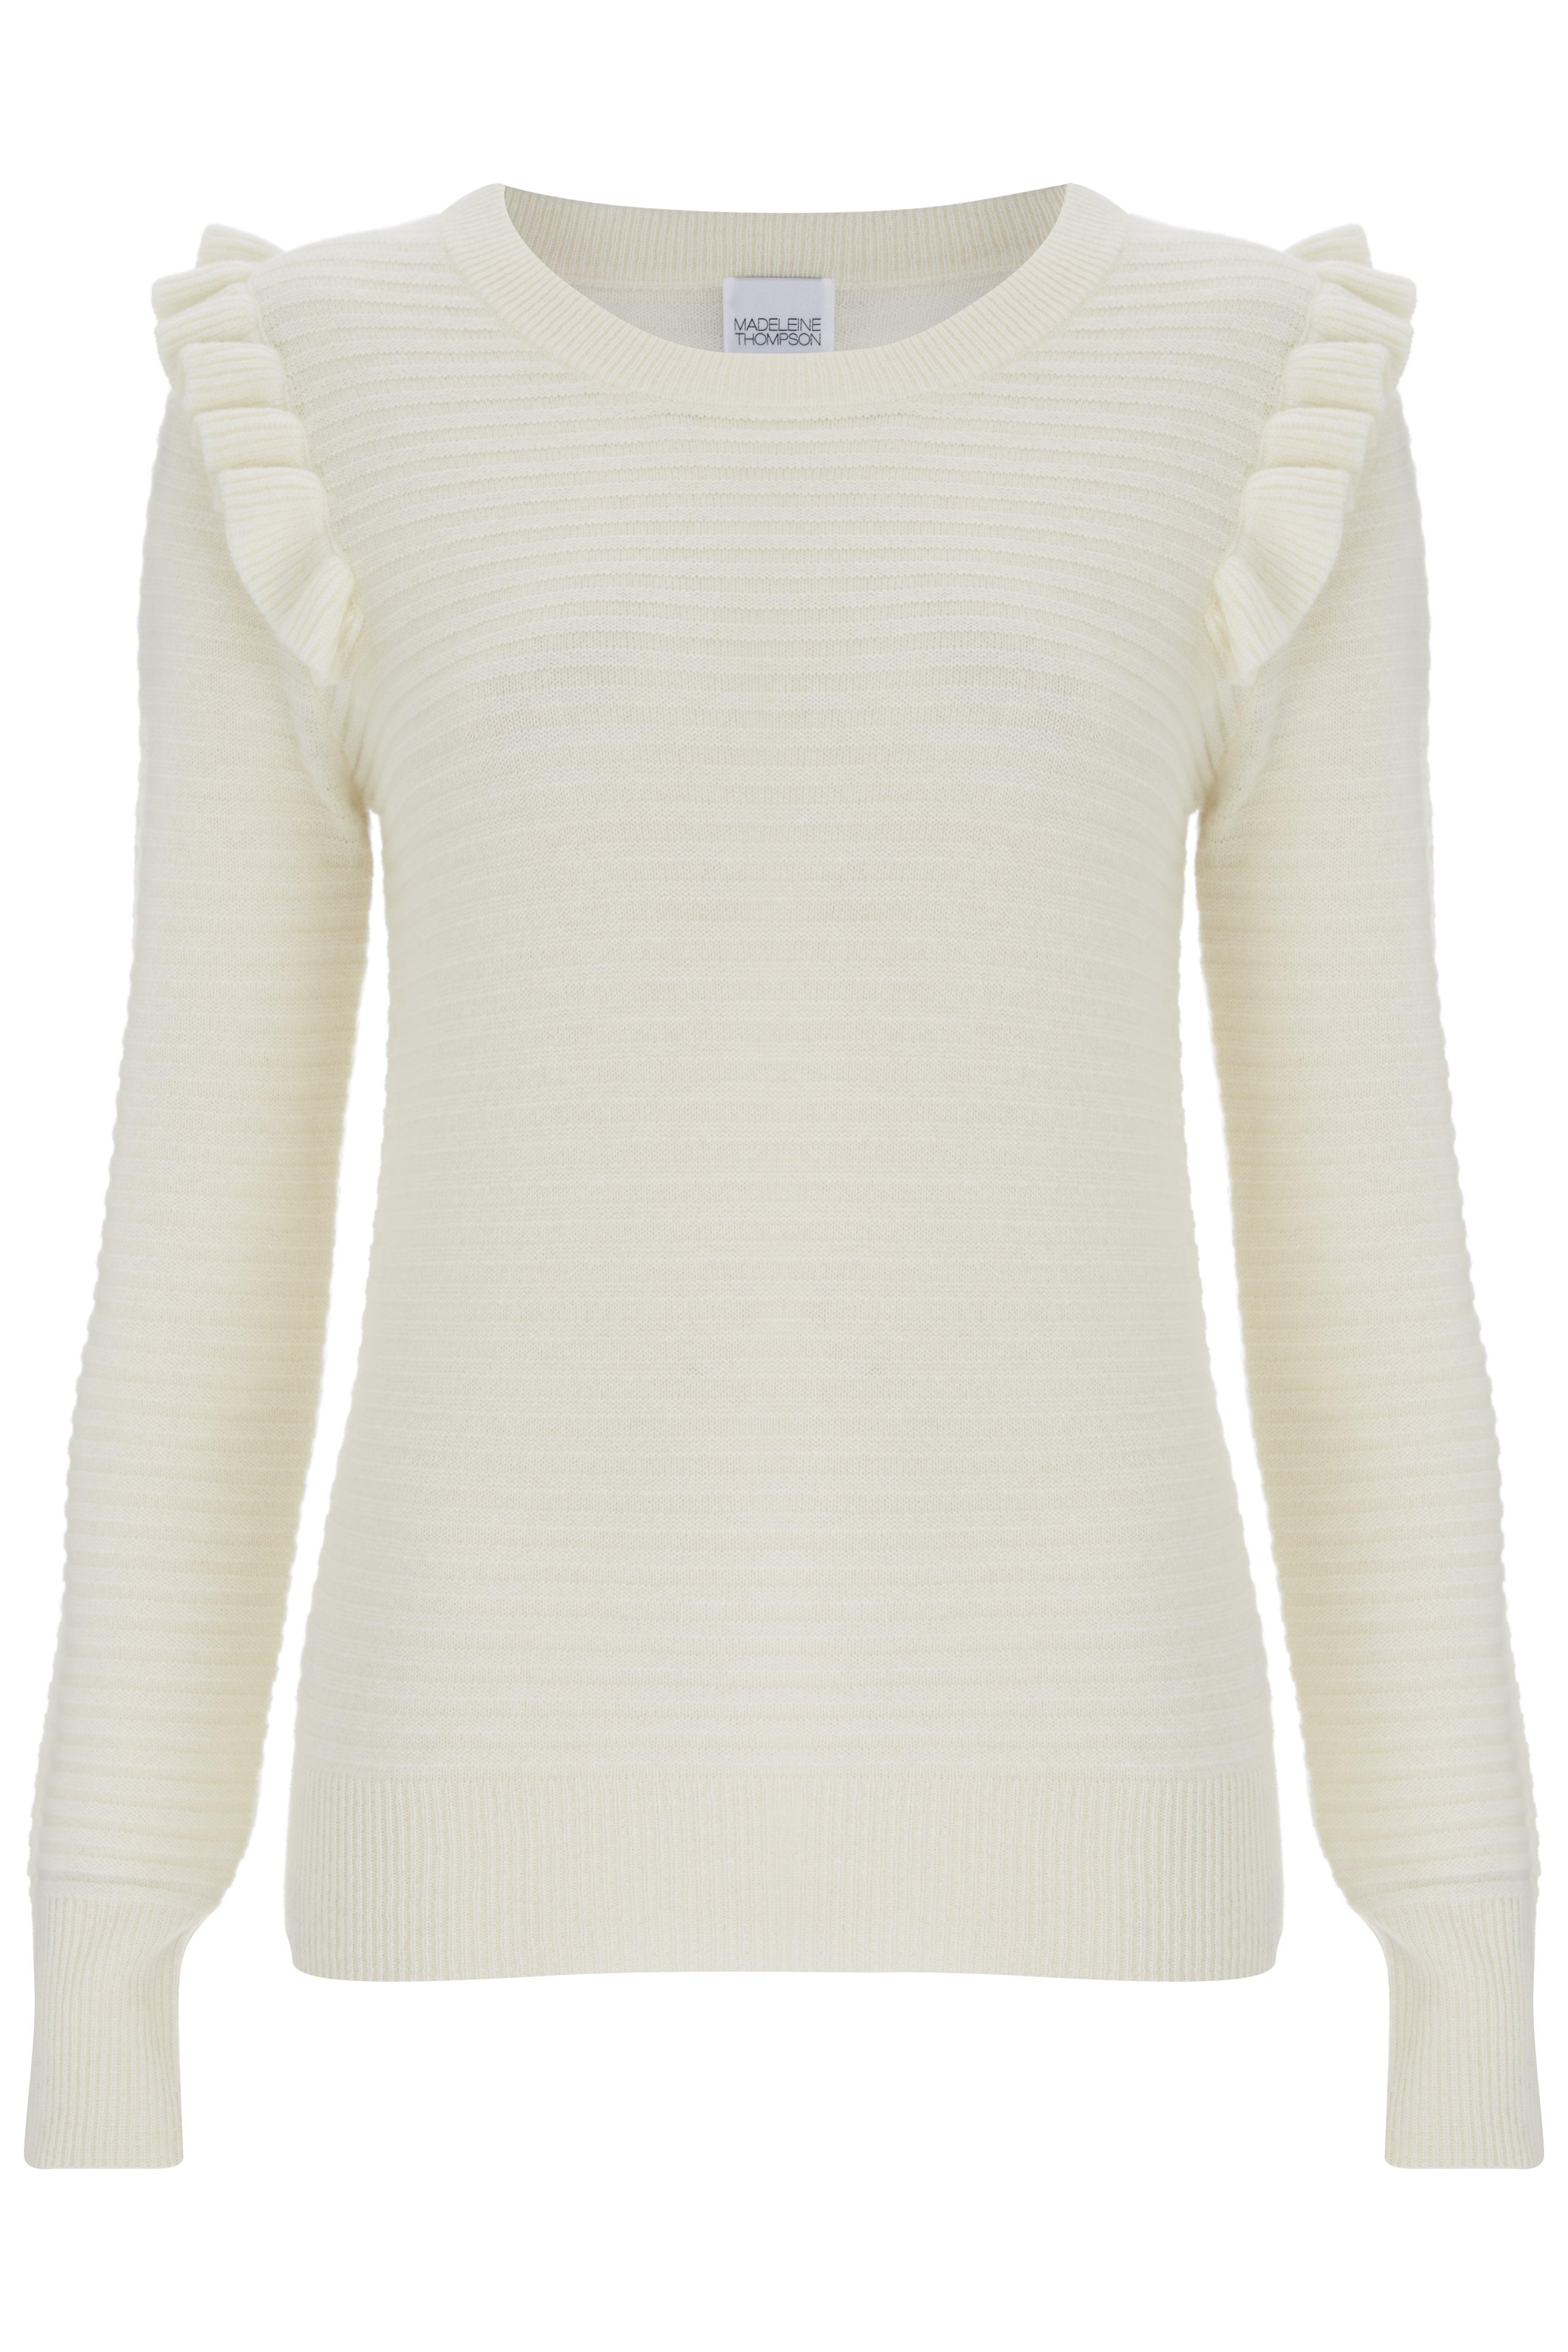 Limited Edition Cheap Sale 100% Original Madeleine Thompson Woman Rainton Cashmere Sweater Ivory Size S Madeleine Thompson Manchester For Sale Outlet Huge Surprise Sale Extremely vWIRWNsEp